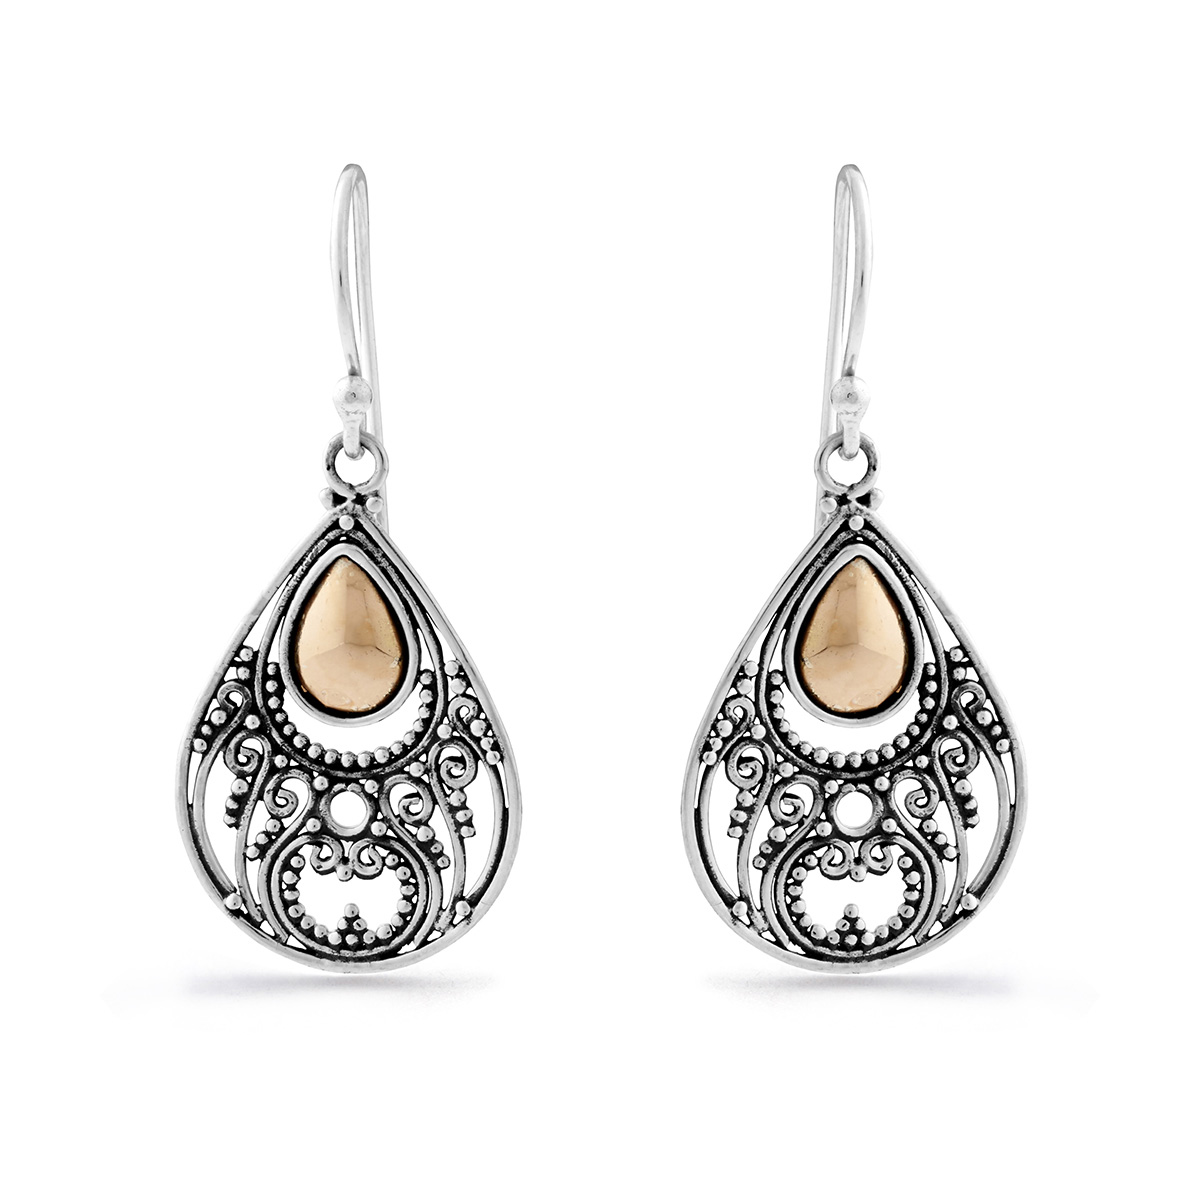 Alamanda Silver & Gold Earrings